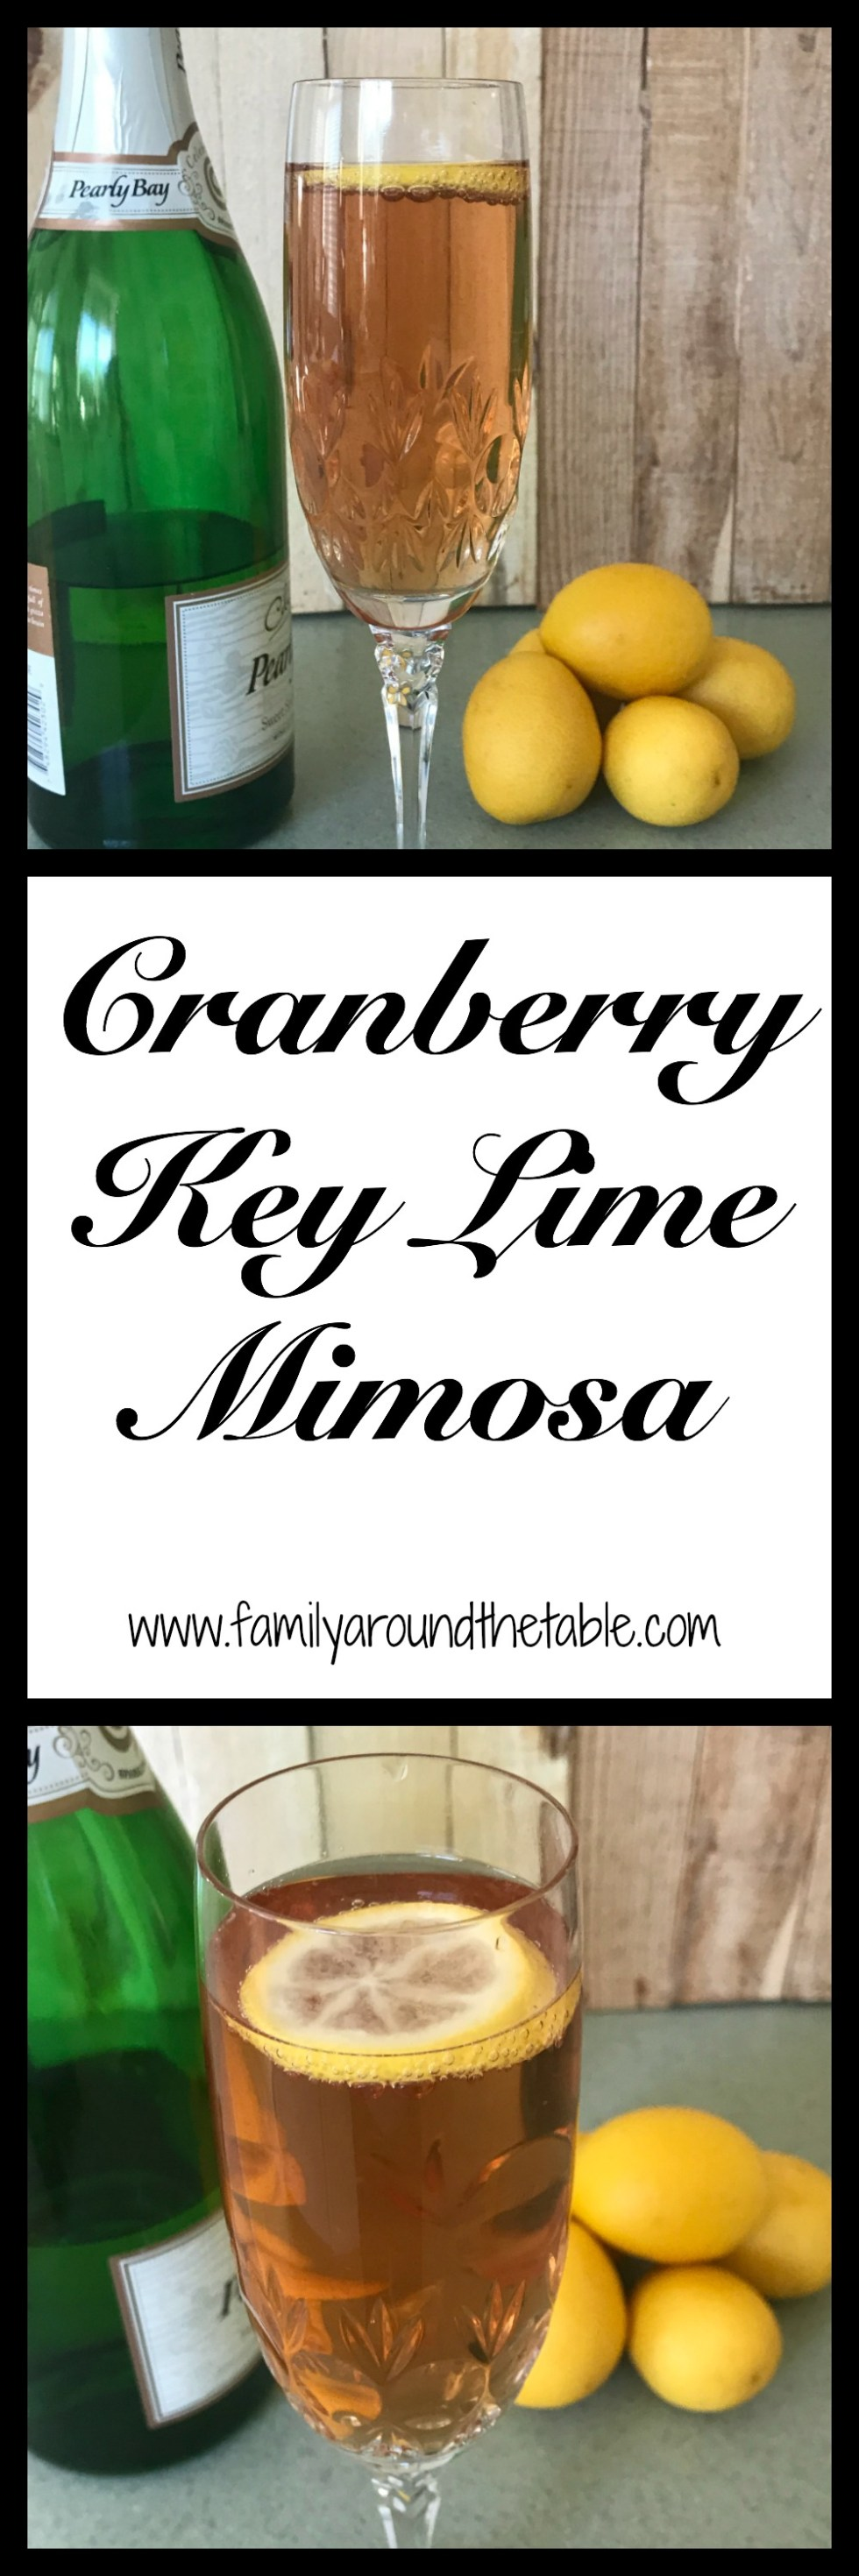 Cranberry Key Lime Mimosas are perfect for brunch.